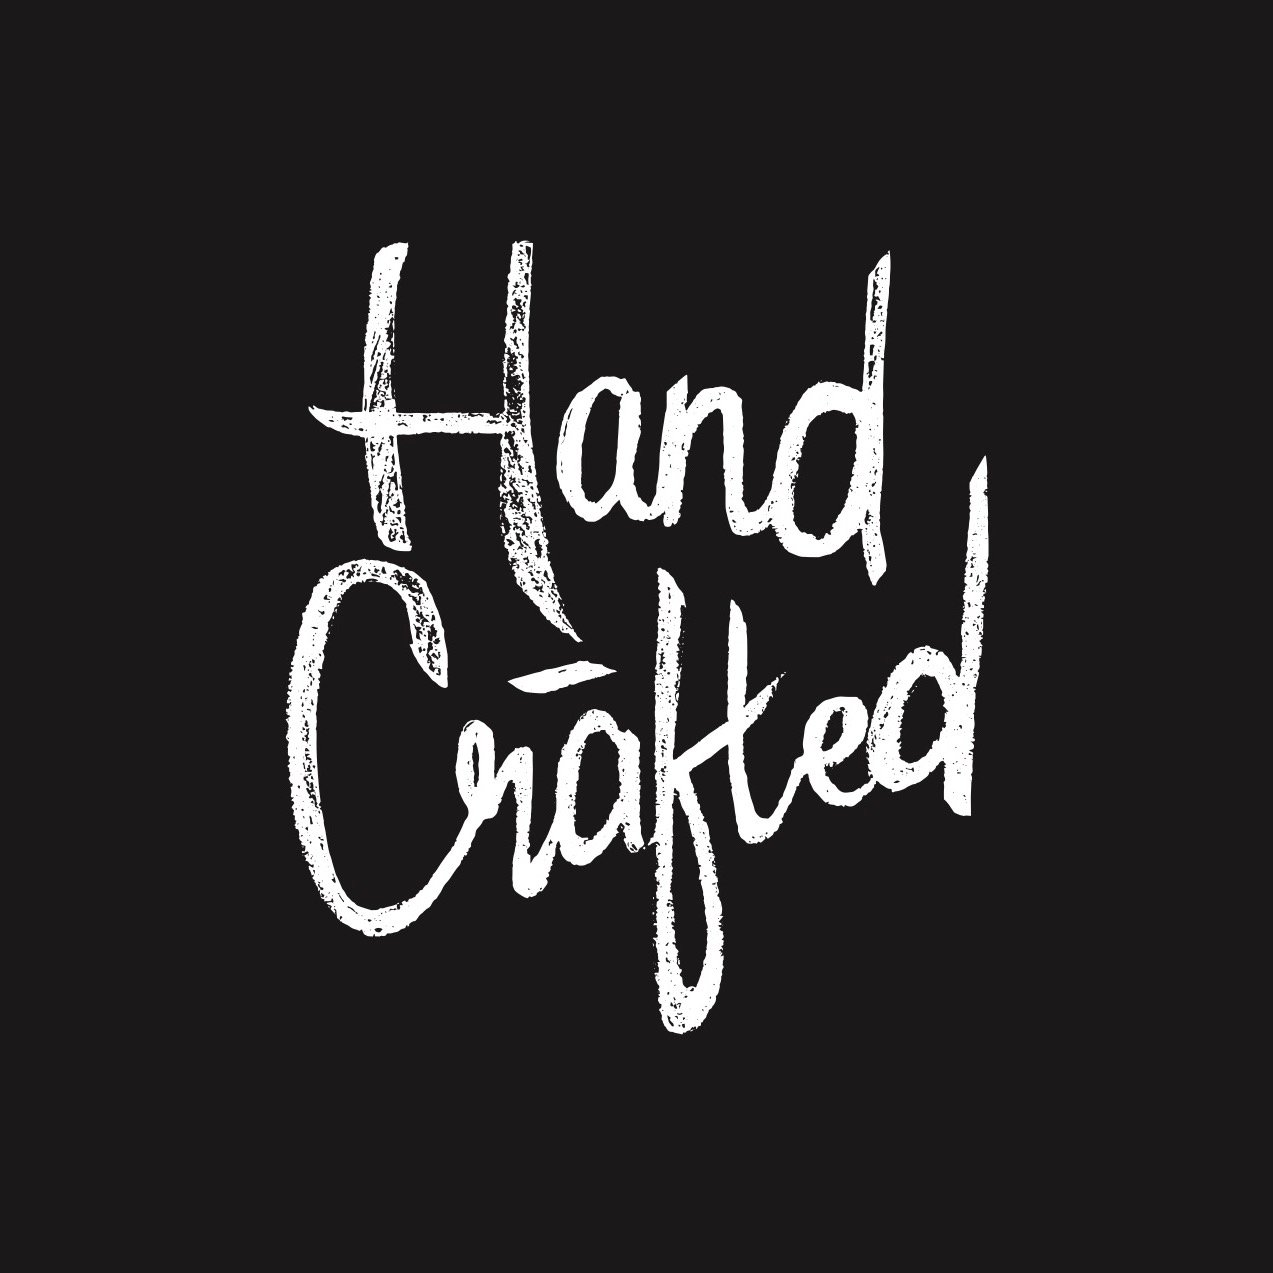 hand crafted stories on twitter season 2 handcrafted is all